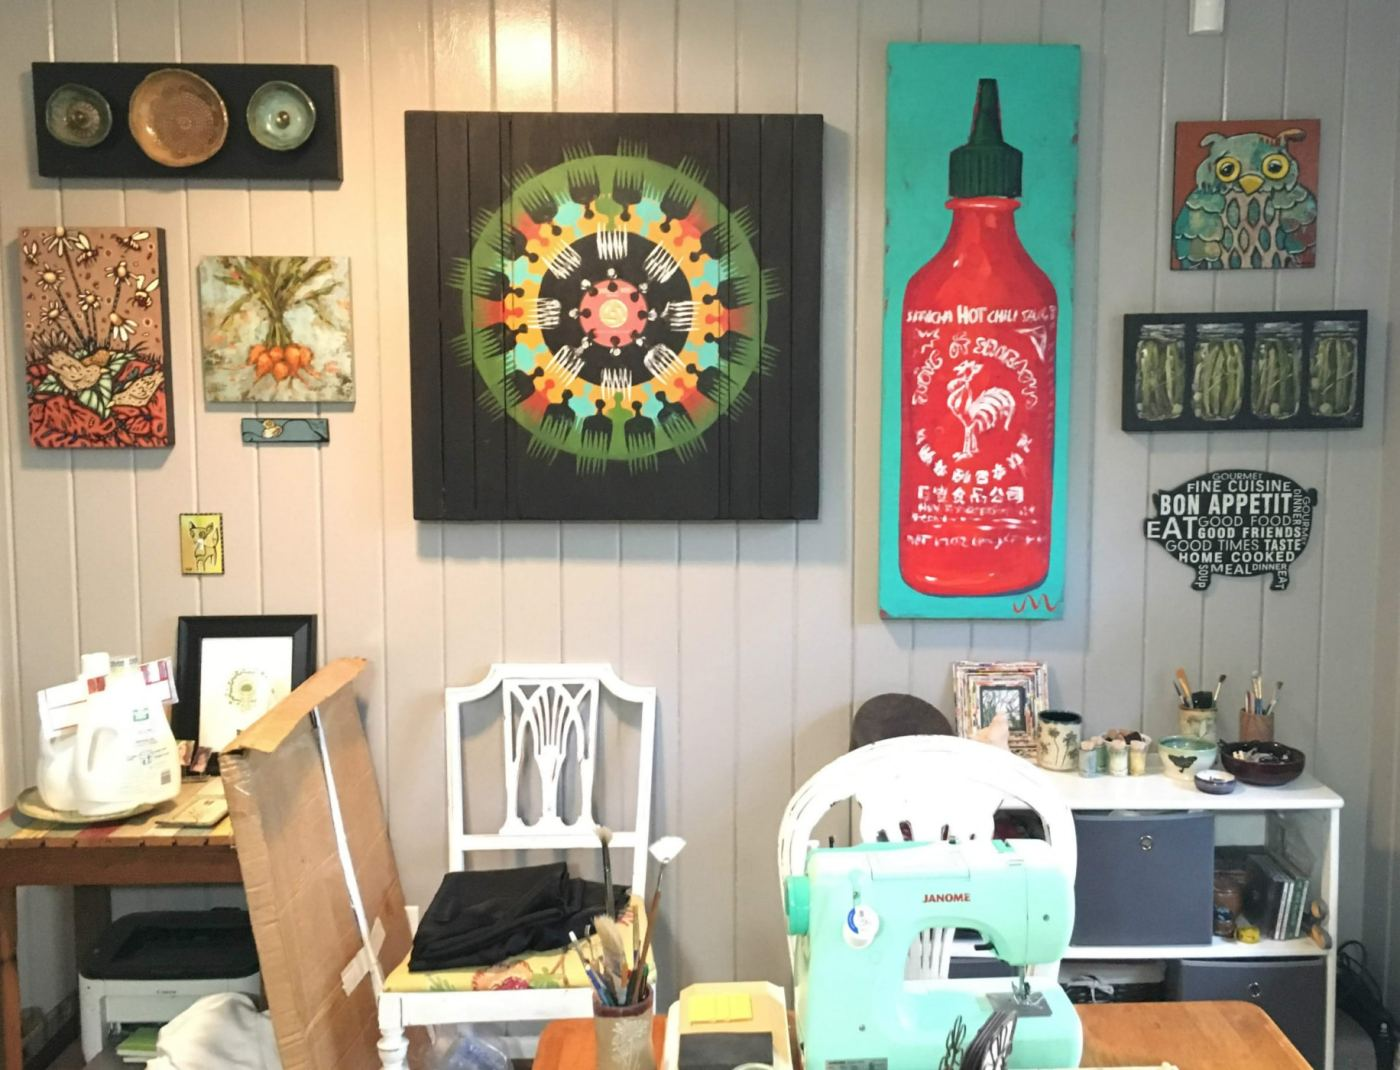 Shelleigh Buckingham, one of the Roebuck Springs potters, has several art walls in her home that feature the work of local Birmingham artists.